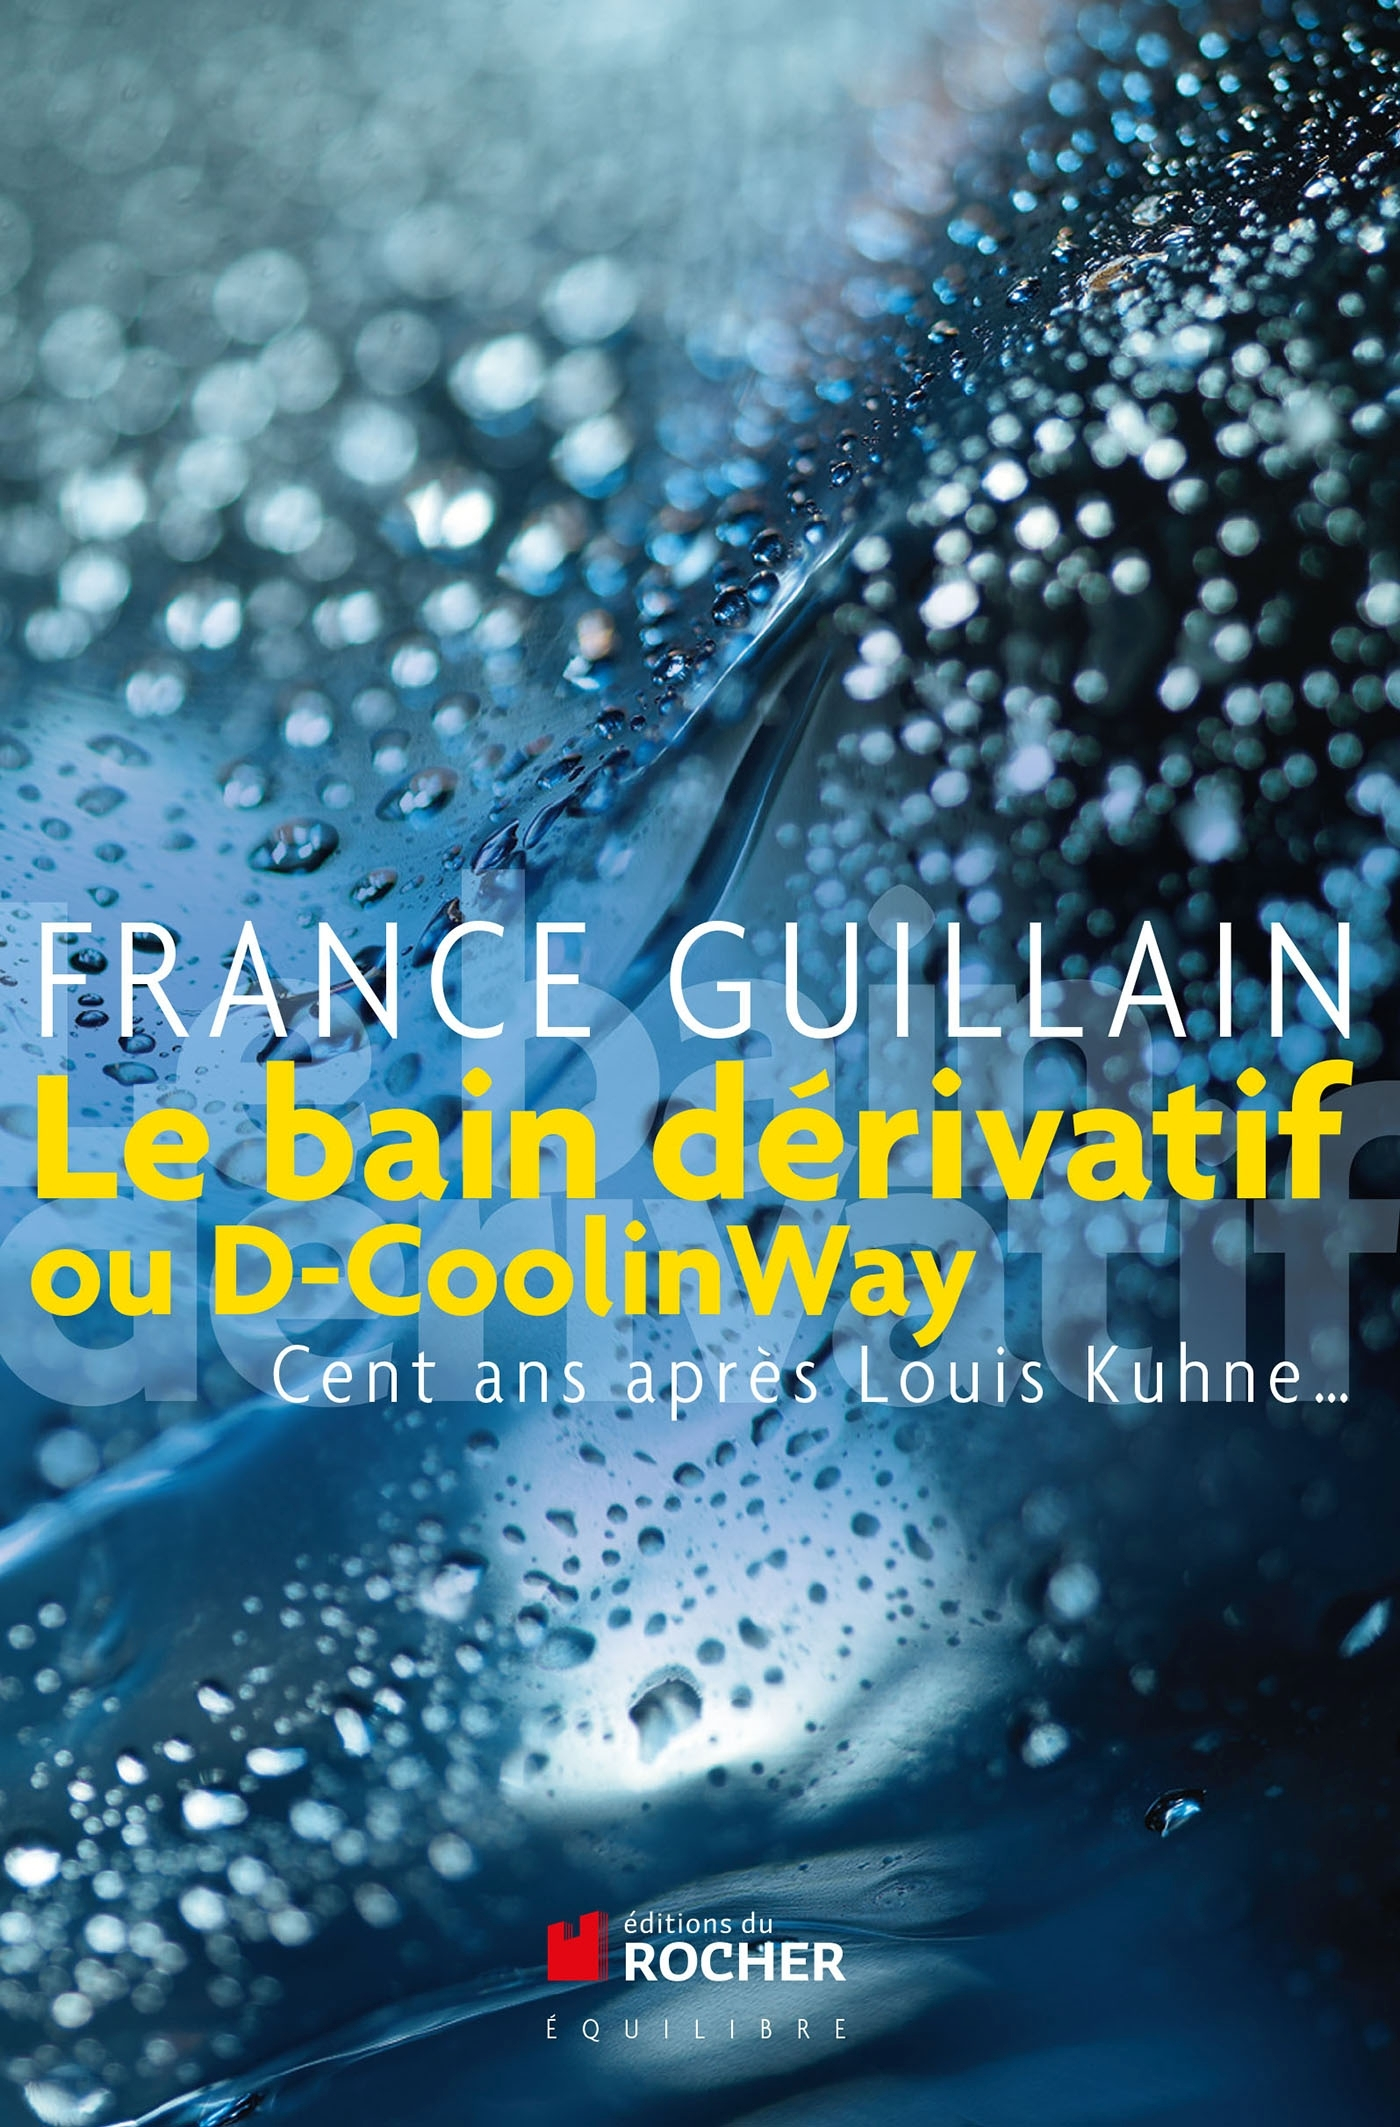 LE BAIN DERIVATIF OU D-COOLINWAY - CENT ANS APRES LOUIS KUHNE...